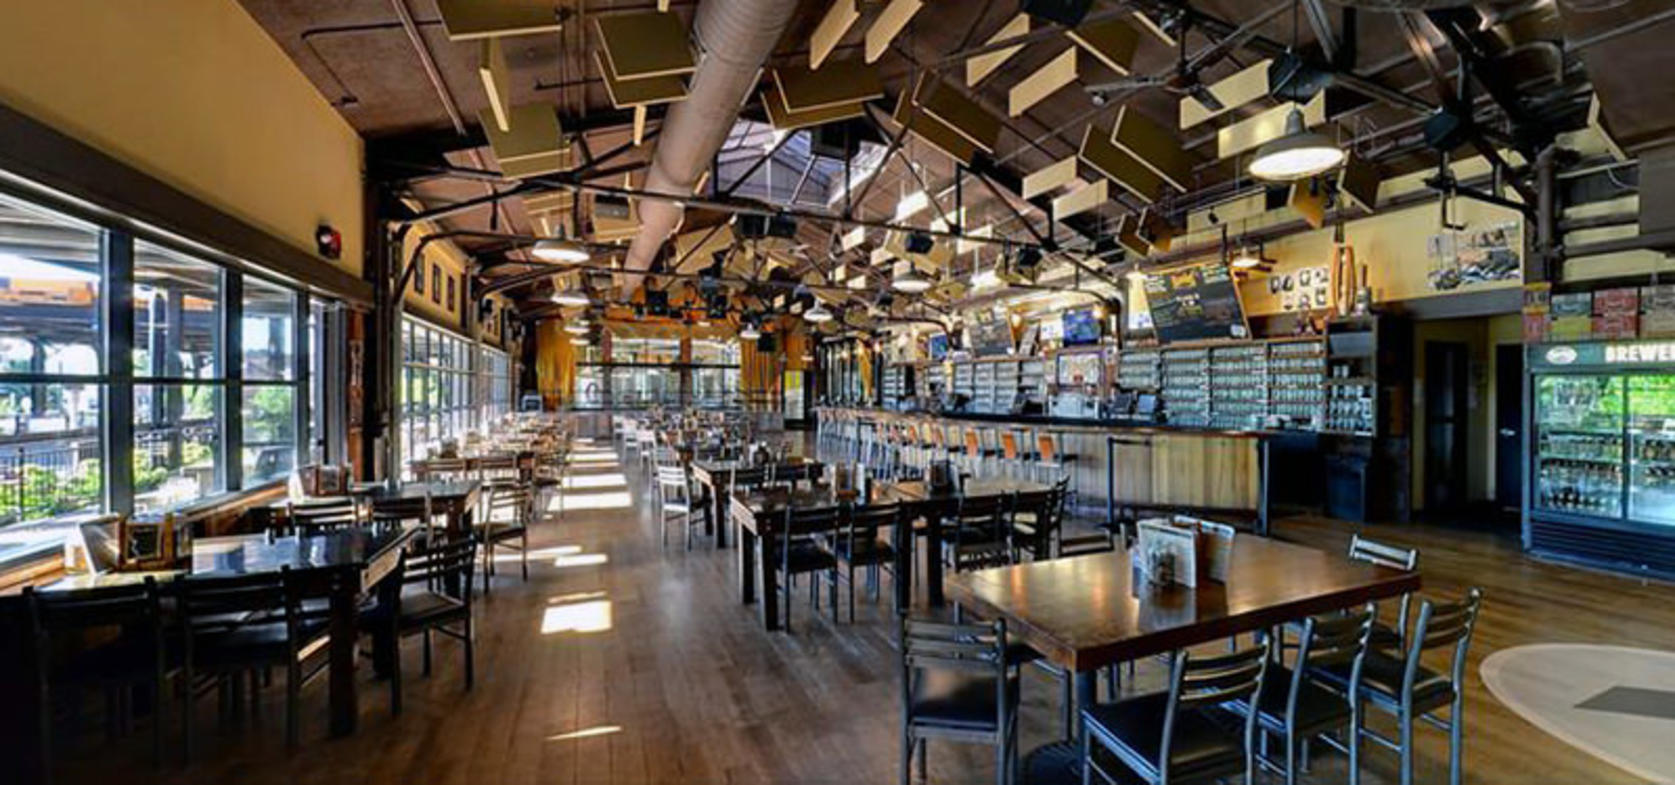 Founders Brewing Co. interior